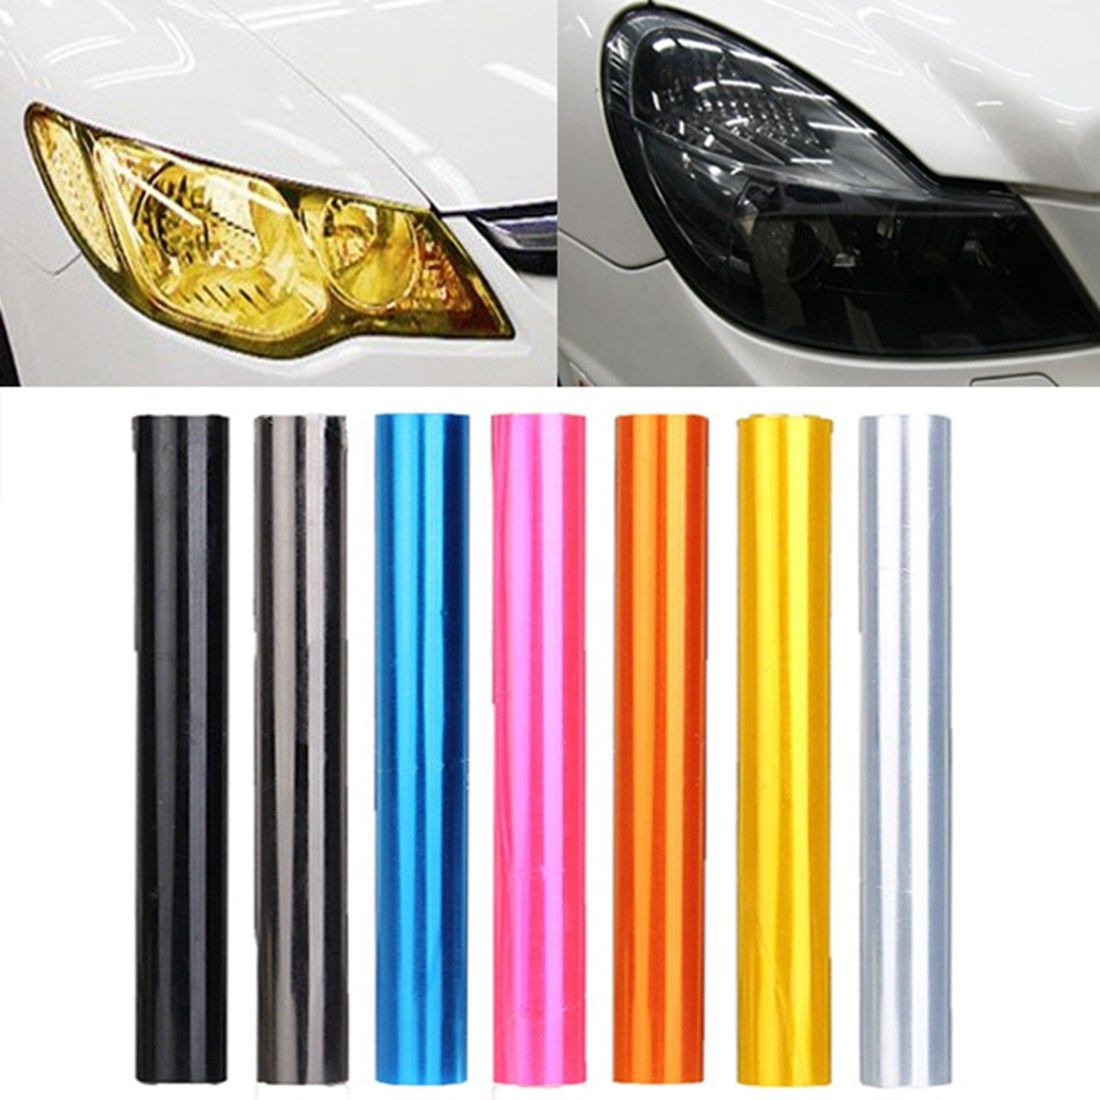 30 Cm X 100 Cm Oto Araba Ton Far Arka Lambasi Sis Isik Vinil Duman Film Sac Sticker Kapak 12 Inc X 40 Inc Araba Styling Vinyl For Cars Tail Light Bmw Z4